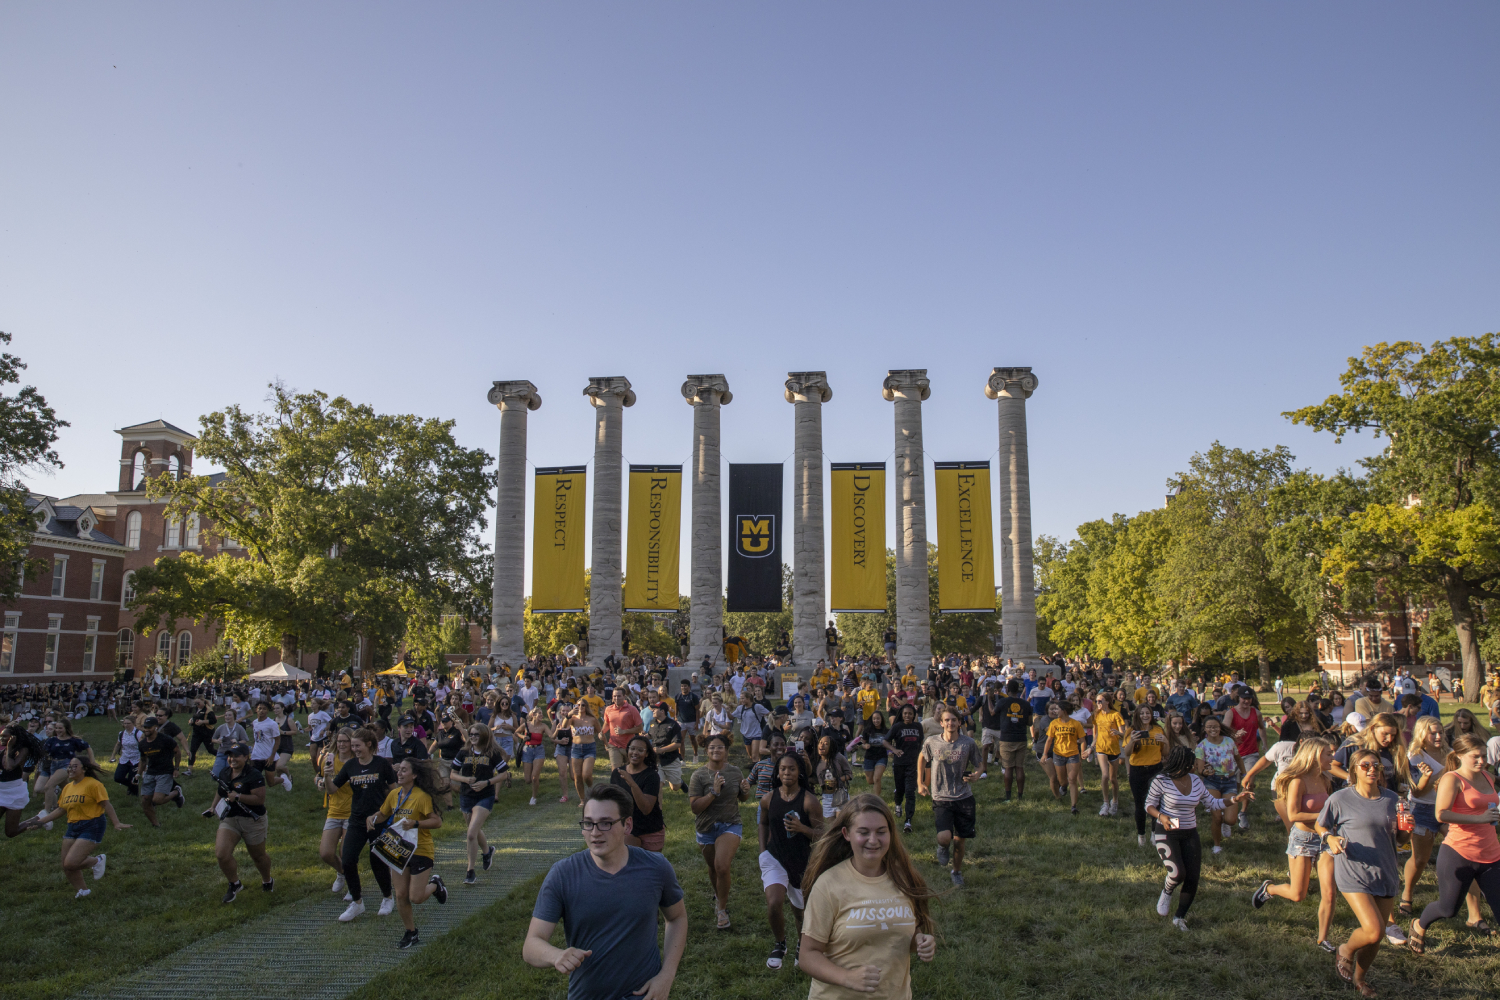 Mizzou students run through the Columns on MU's campus.